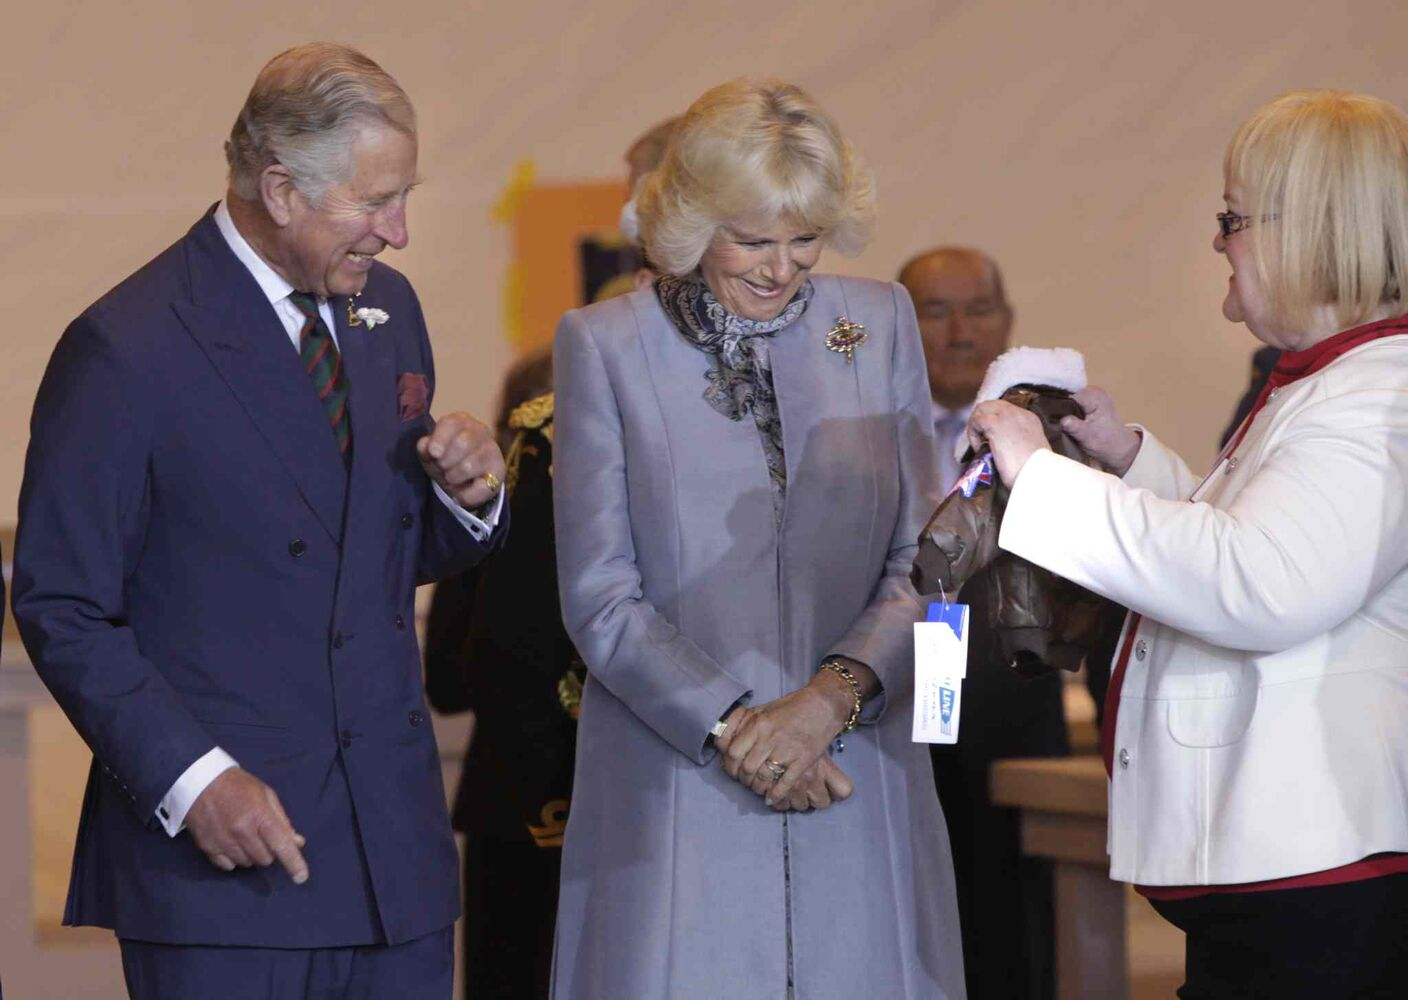 At right, Barb Bowen presents Prince Charles and Camilla, Duchess of Cornwall a flight jacket for Prince George at the ceremony in the Stevenson Hangar Wednesday morning.    (Wayne Glowacki / Winnipeg Free Press)